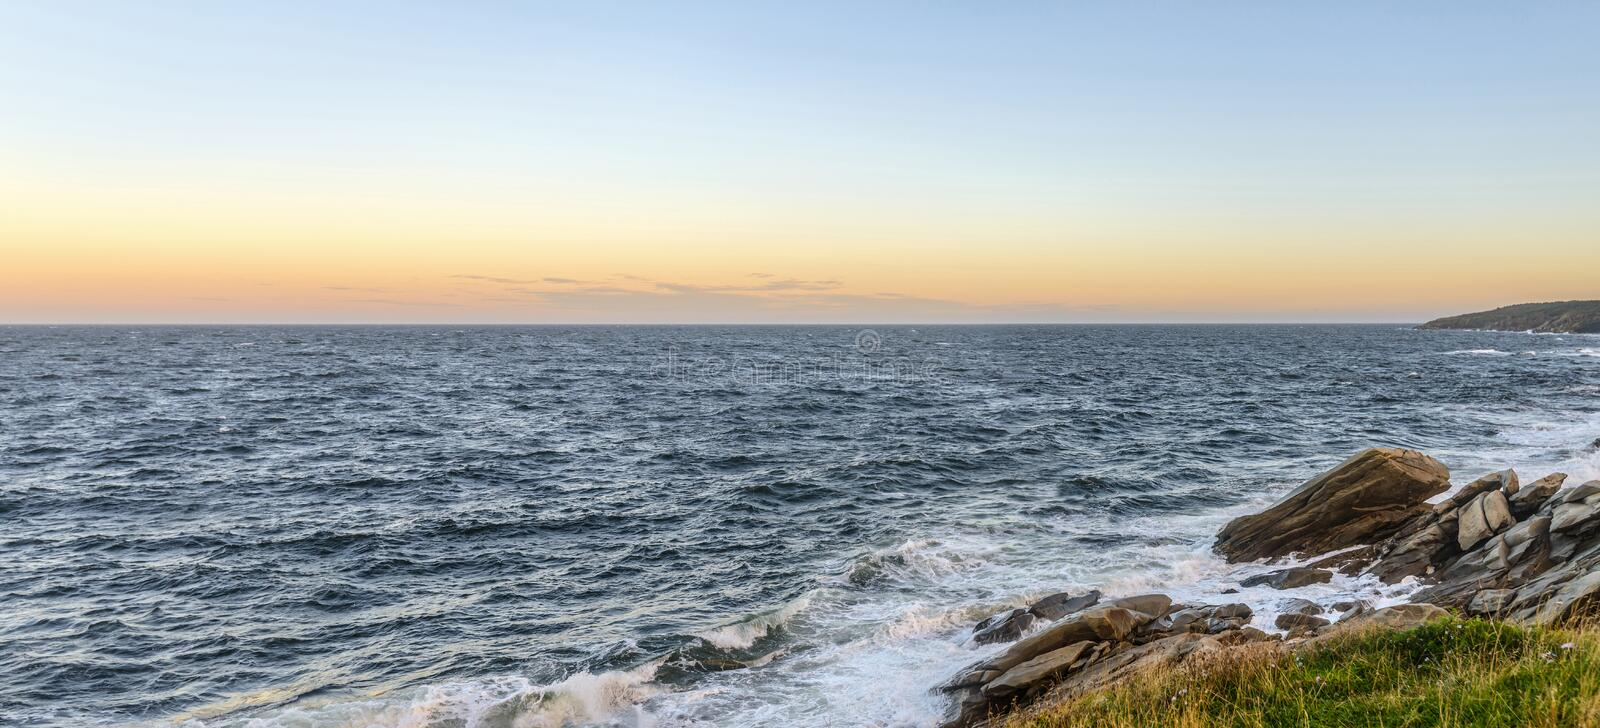 Download Panorama Of An Ocean Shore At The Crack Of Dawn Stock Image - Image: 34161519